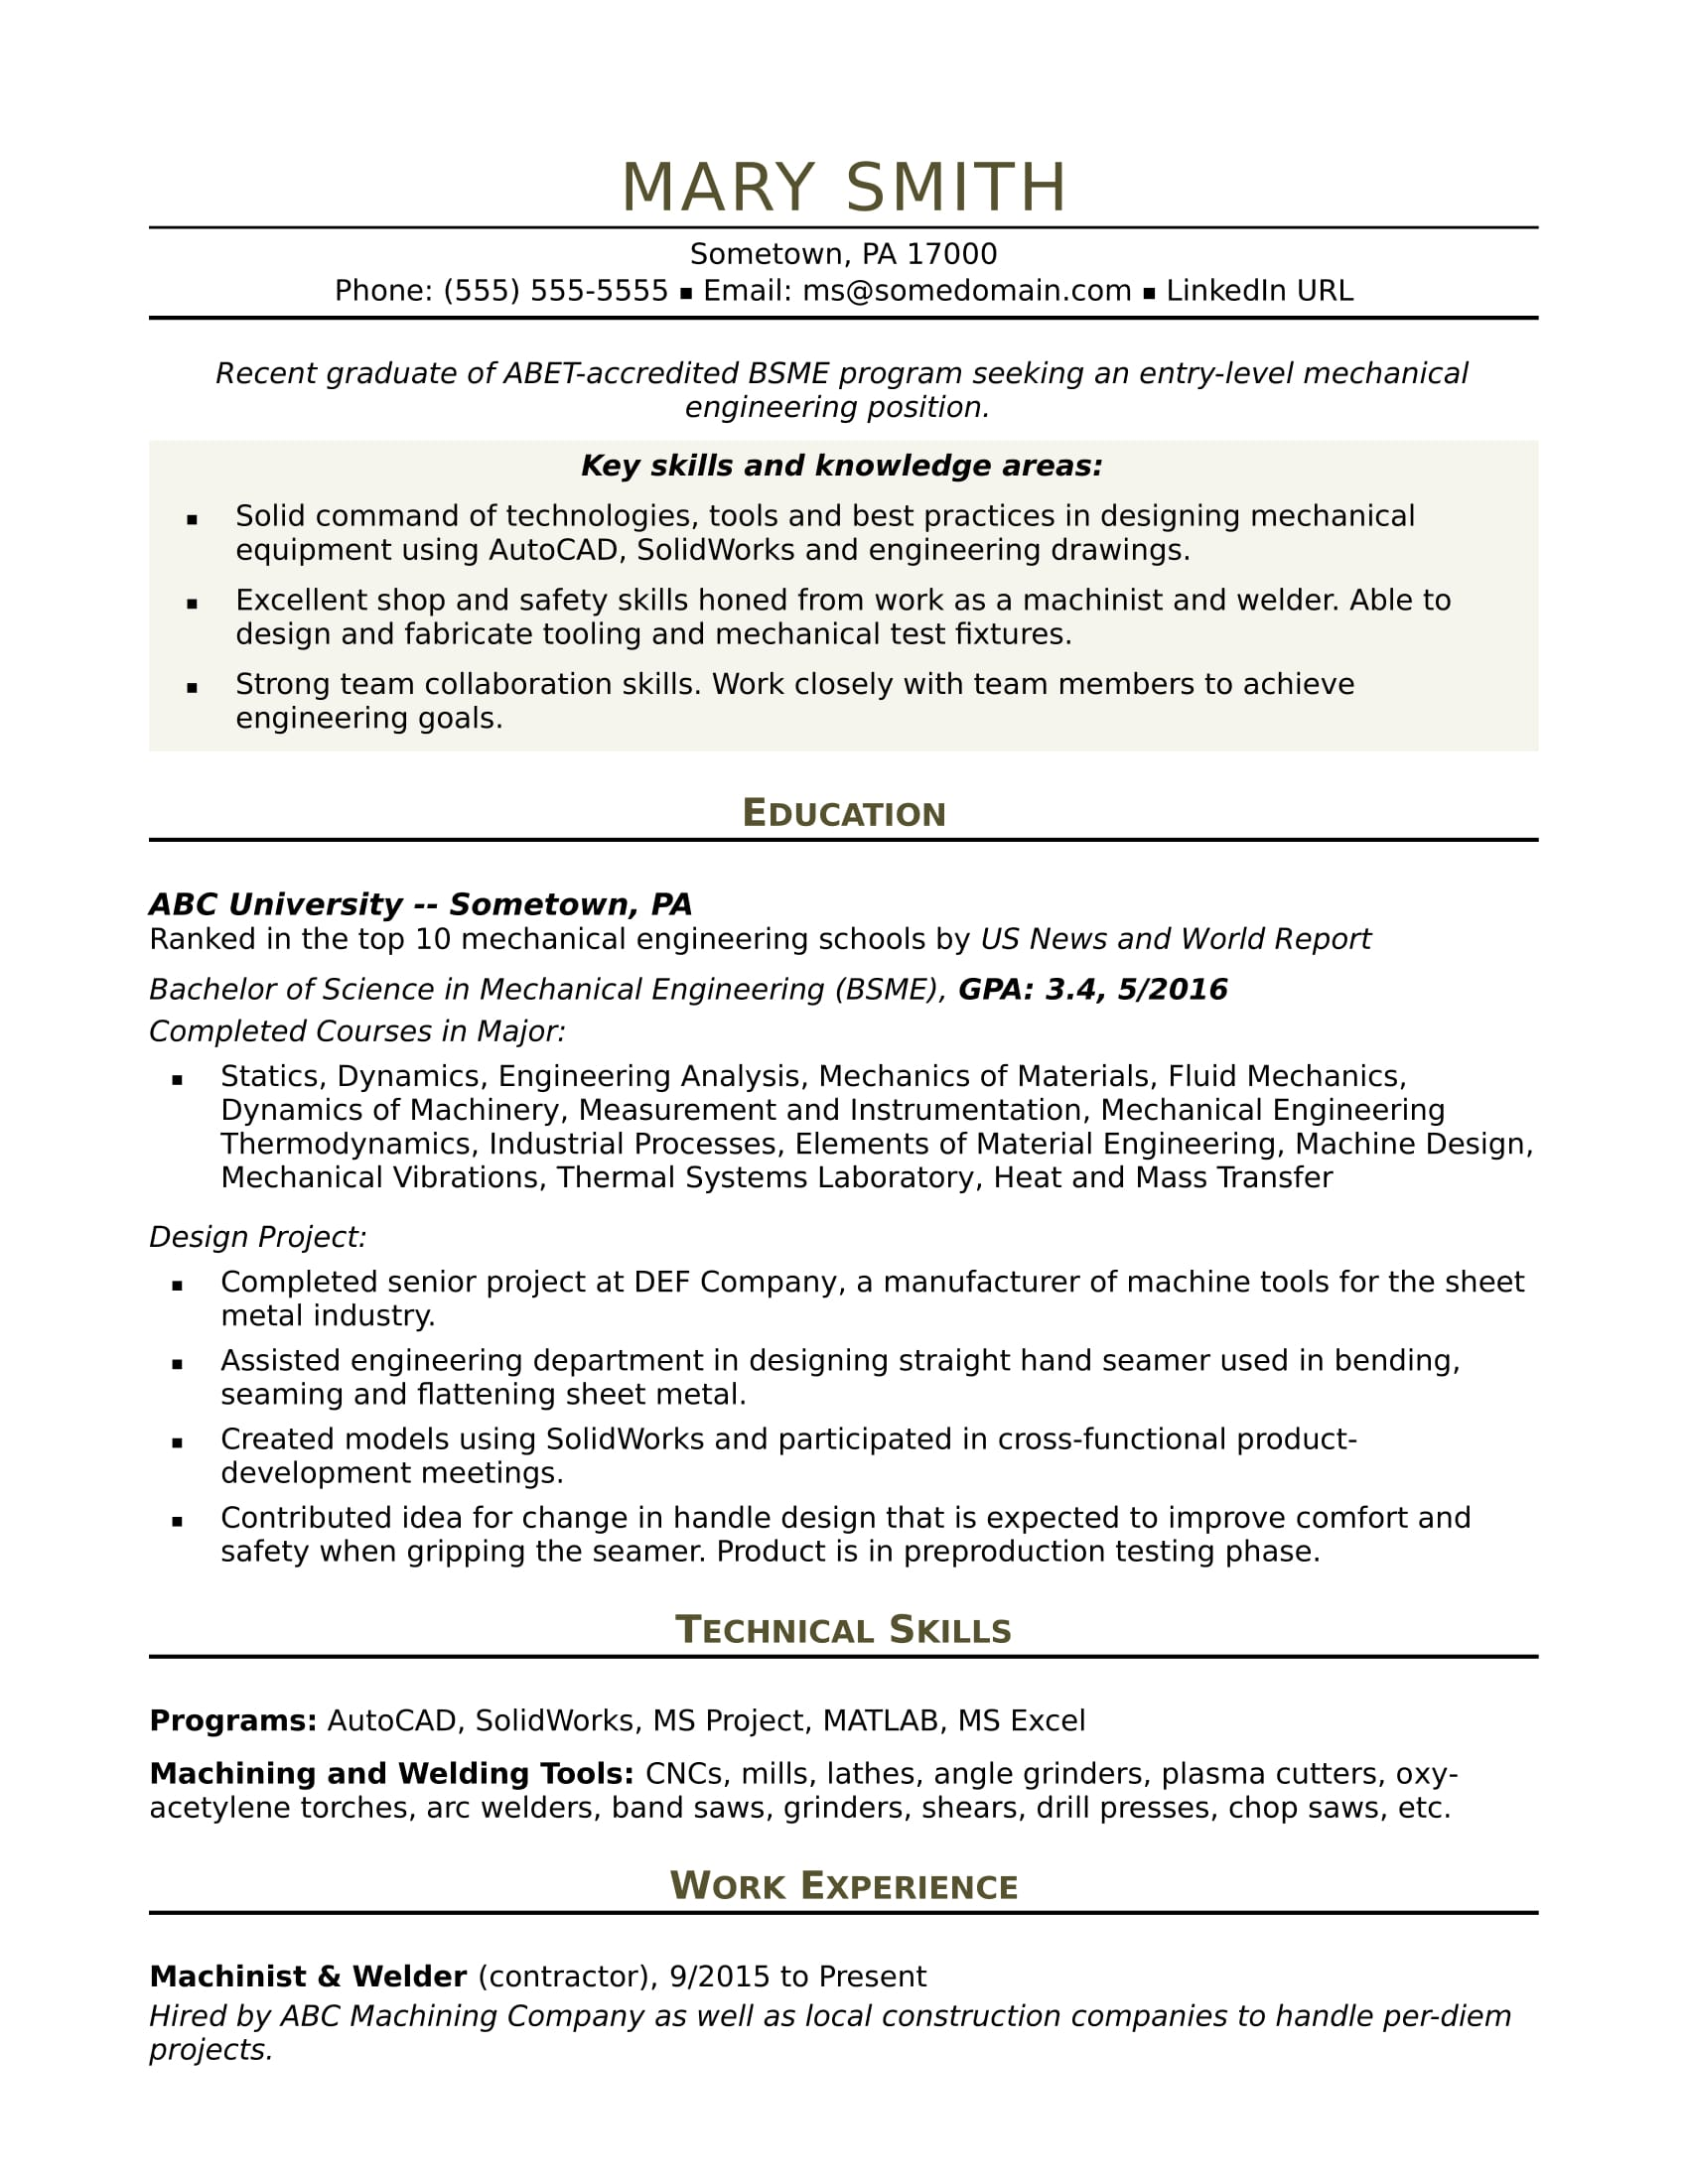 Awesome Sample Resume For An Entry Level Mechanical Engineer Intended Skills Used For Resume